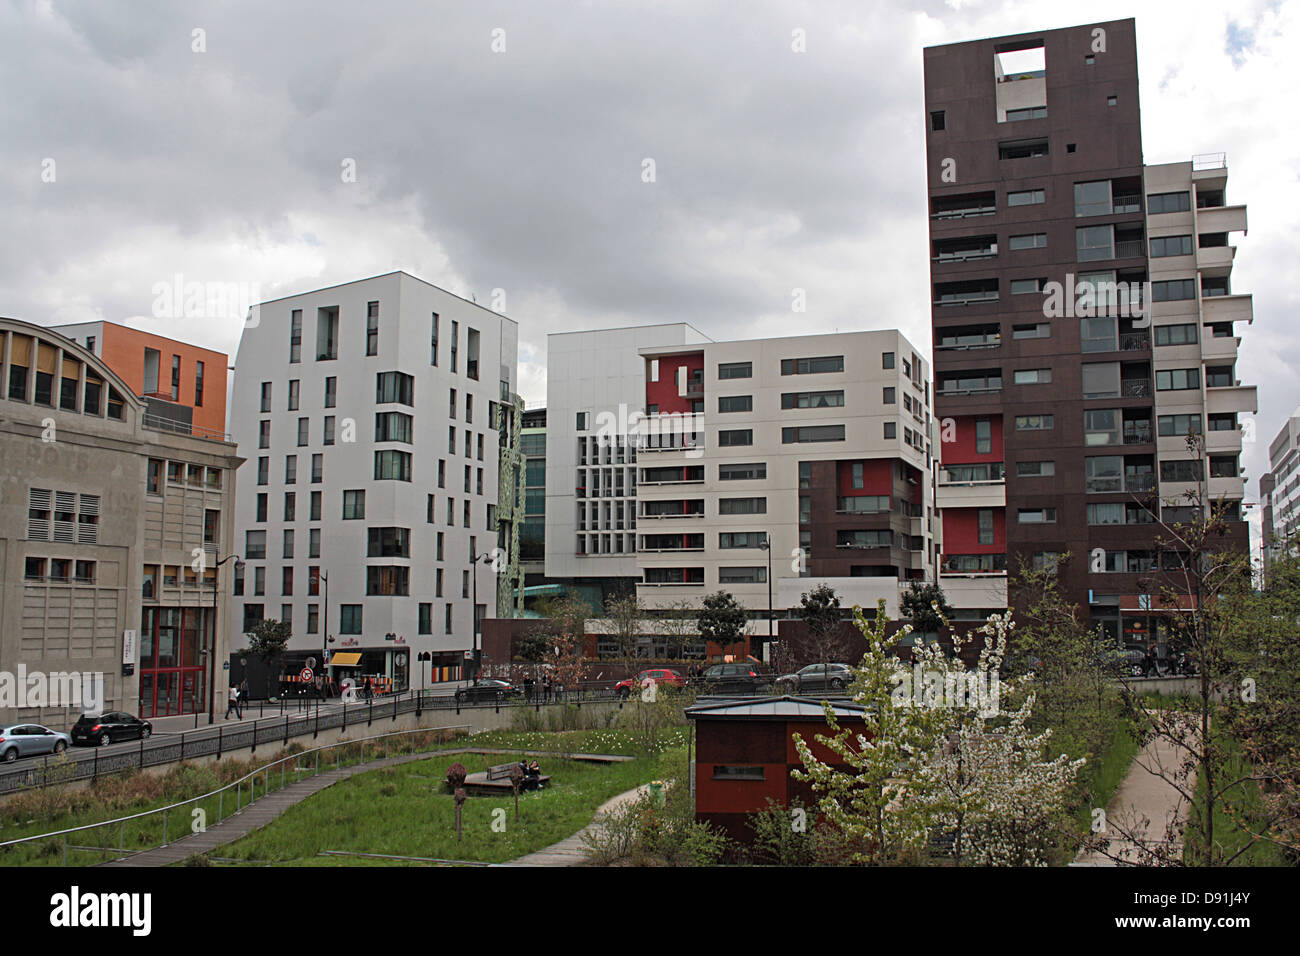 Area adjacent to Grands Moulins de Paris, now part of Université Paris VII Denis-Diderot - Stock Image